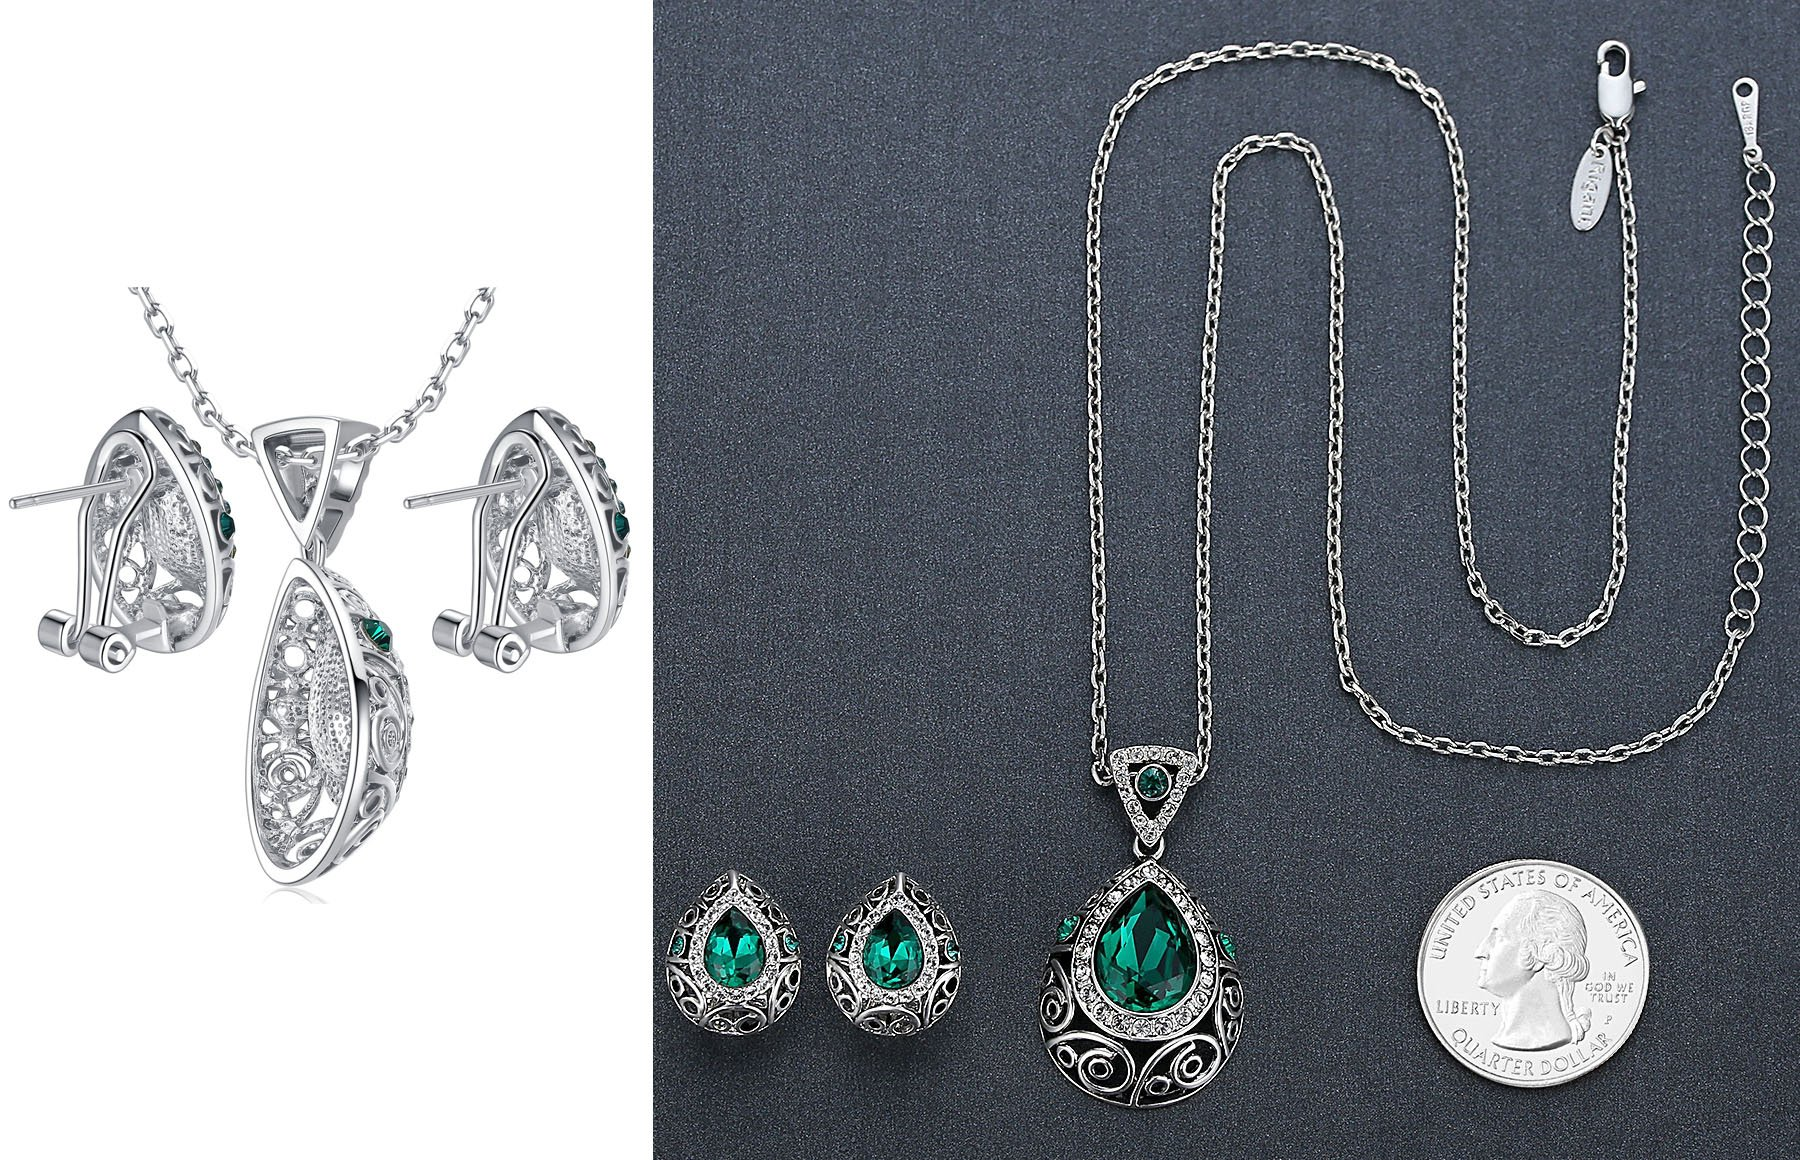 Leafael [Presented by Miss New York] Silver-tone Teardrop Filigree Vintage Style Emerald Green Pendant Necklace Made with Swarovski Crystals Earrings Set, 18'' + 2'', Nickel/Lead/Allergy Box by Leafael (Image #6)